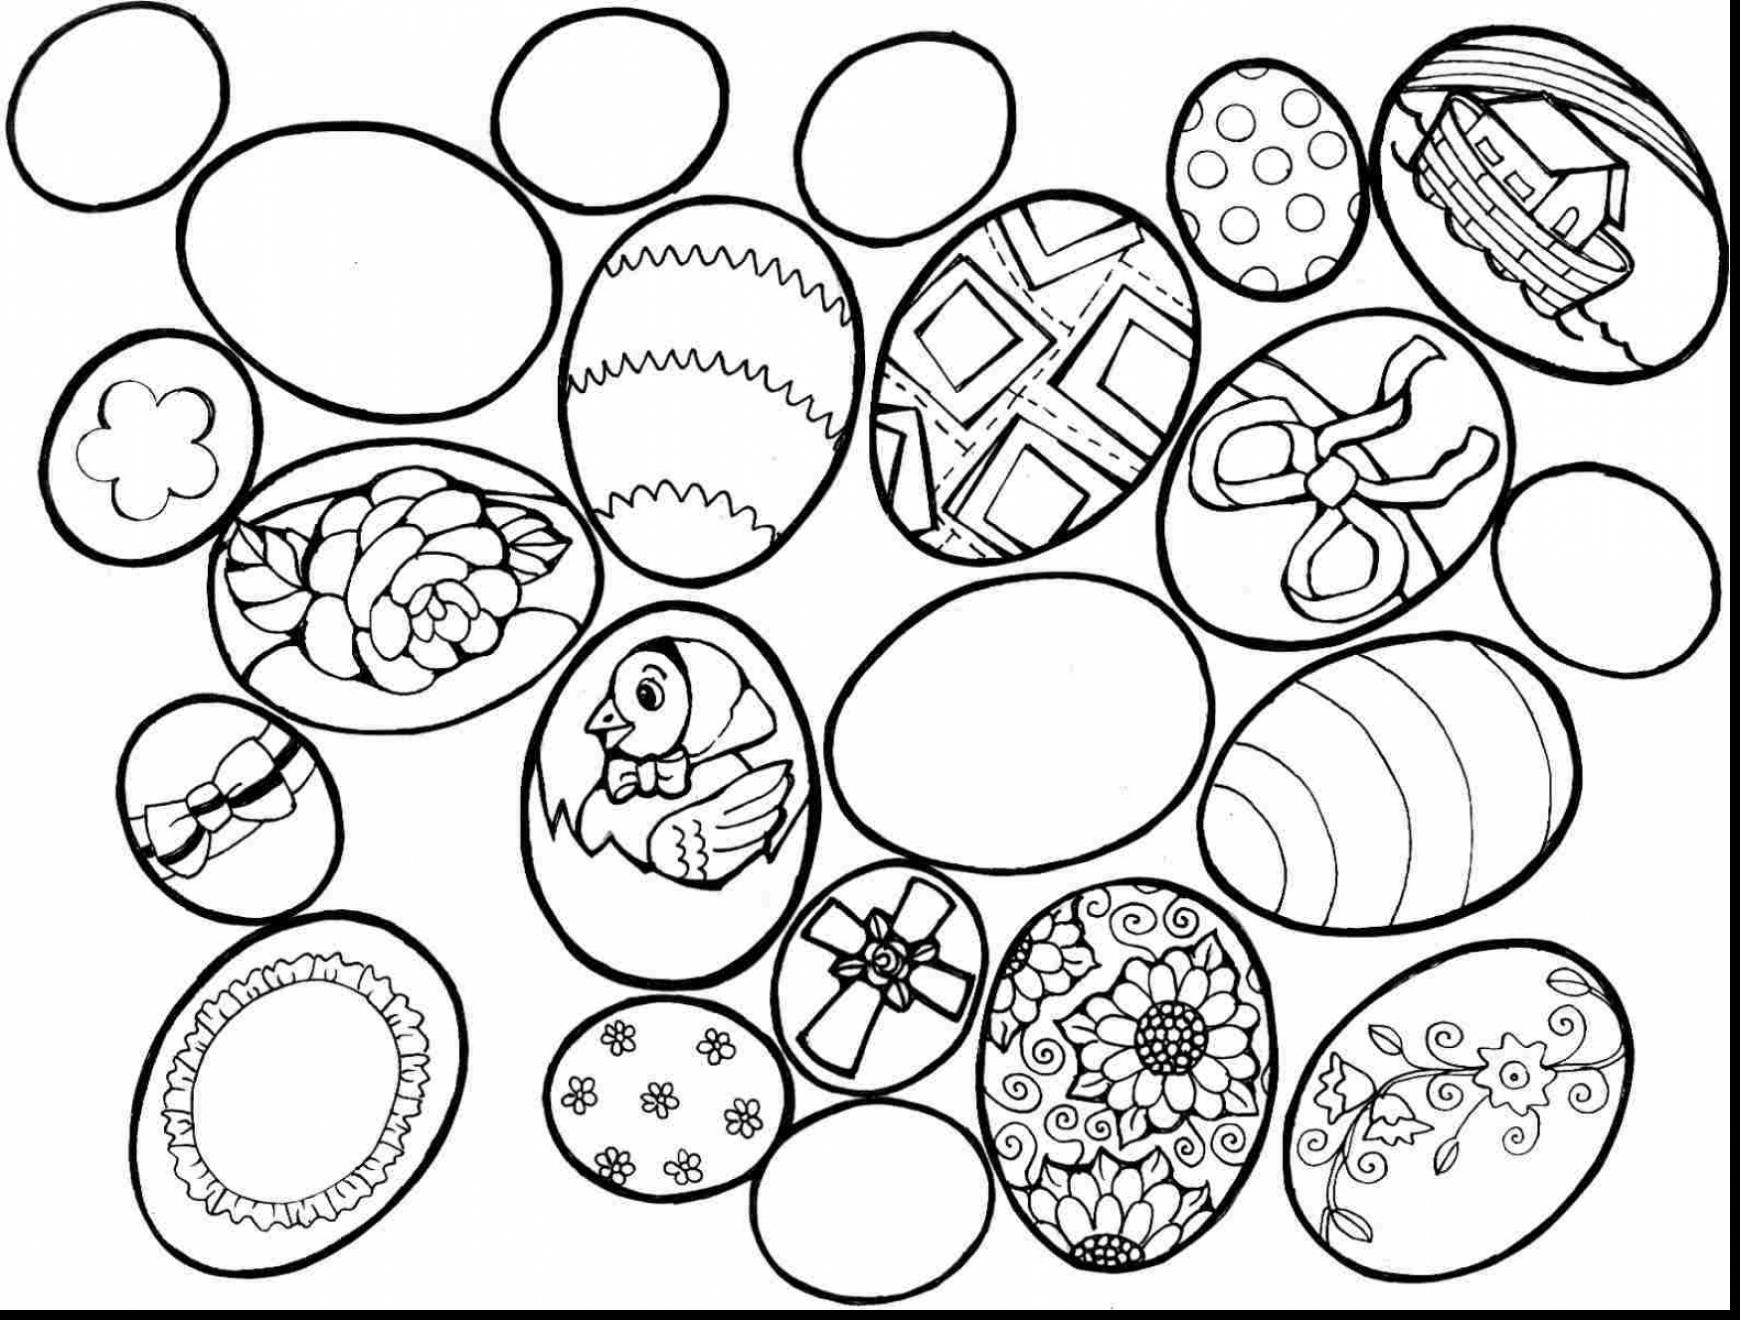 1740x1320 Bible Easter Coloring Pages To Print Great Easter Bible Coloring